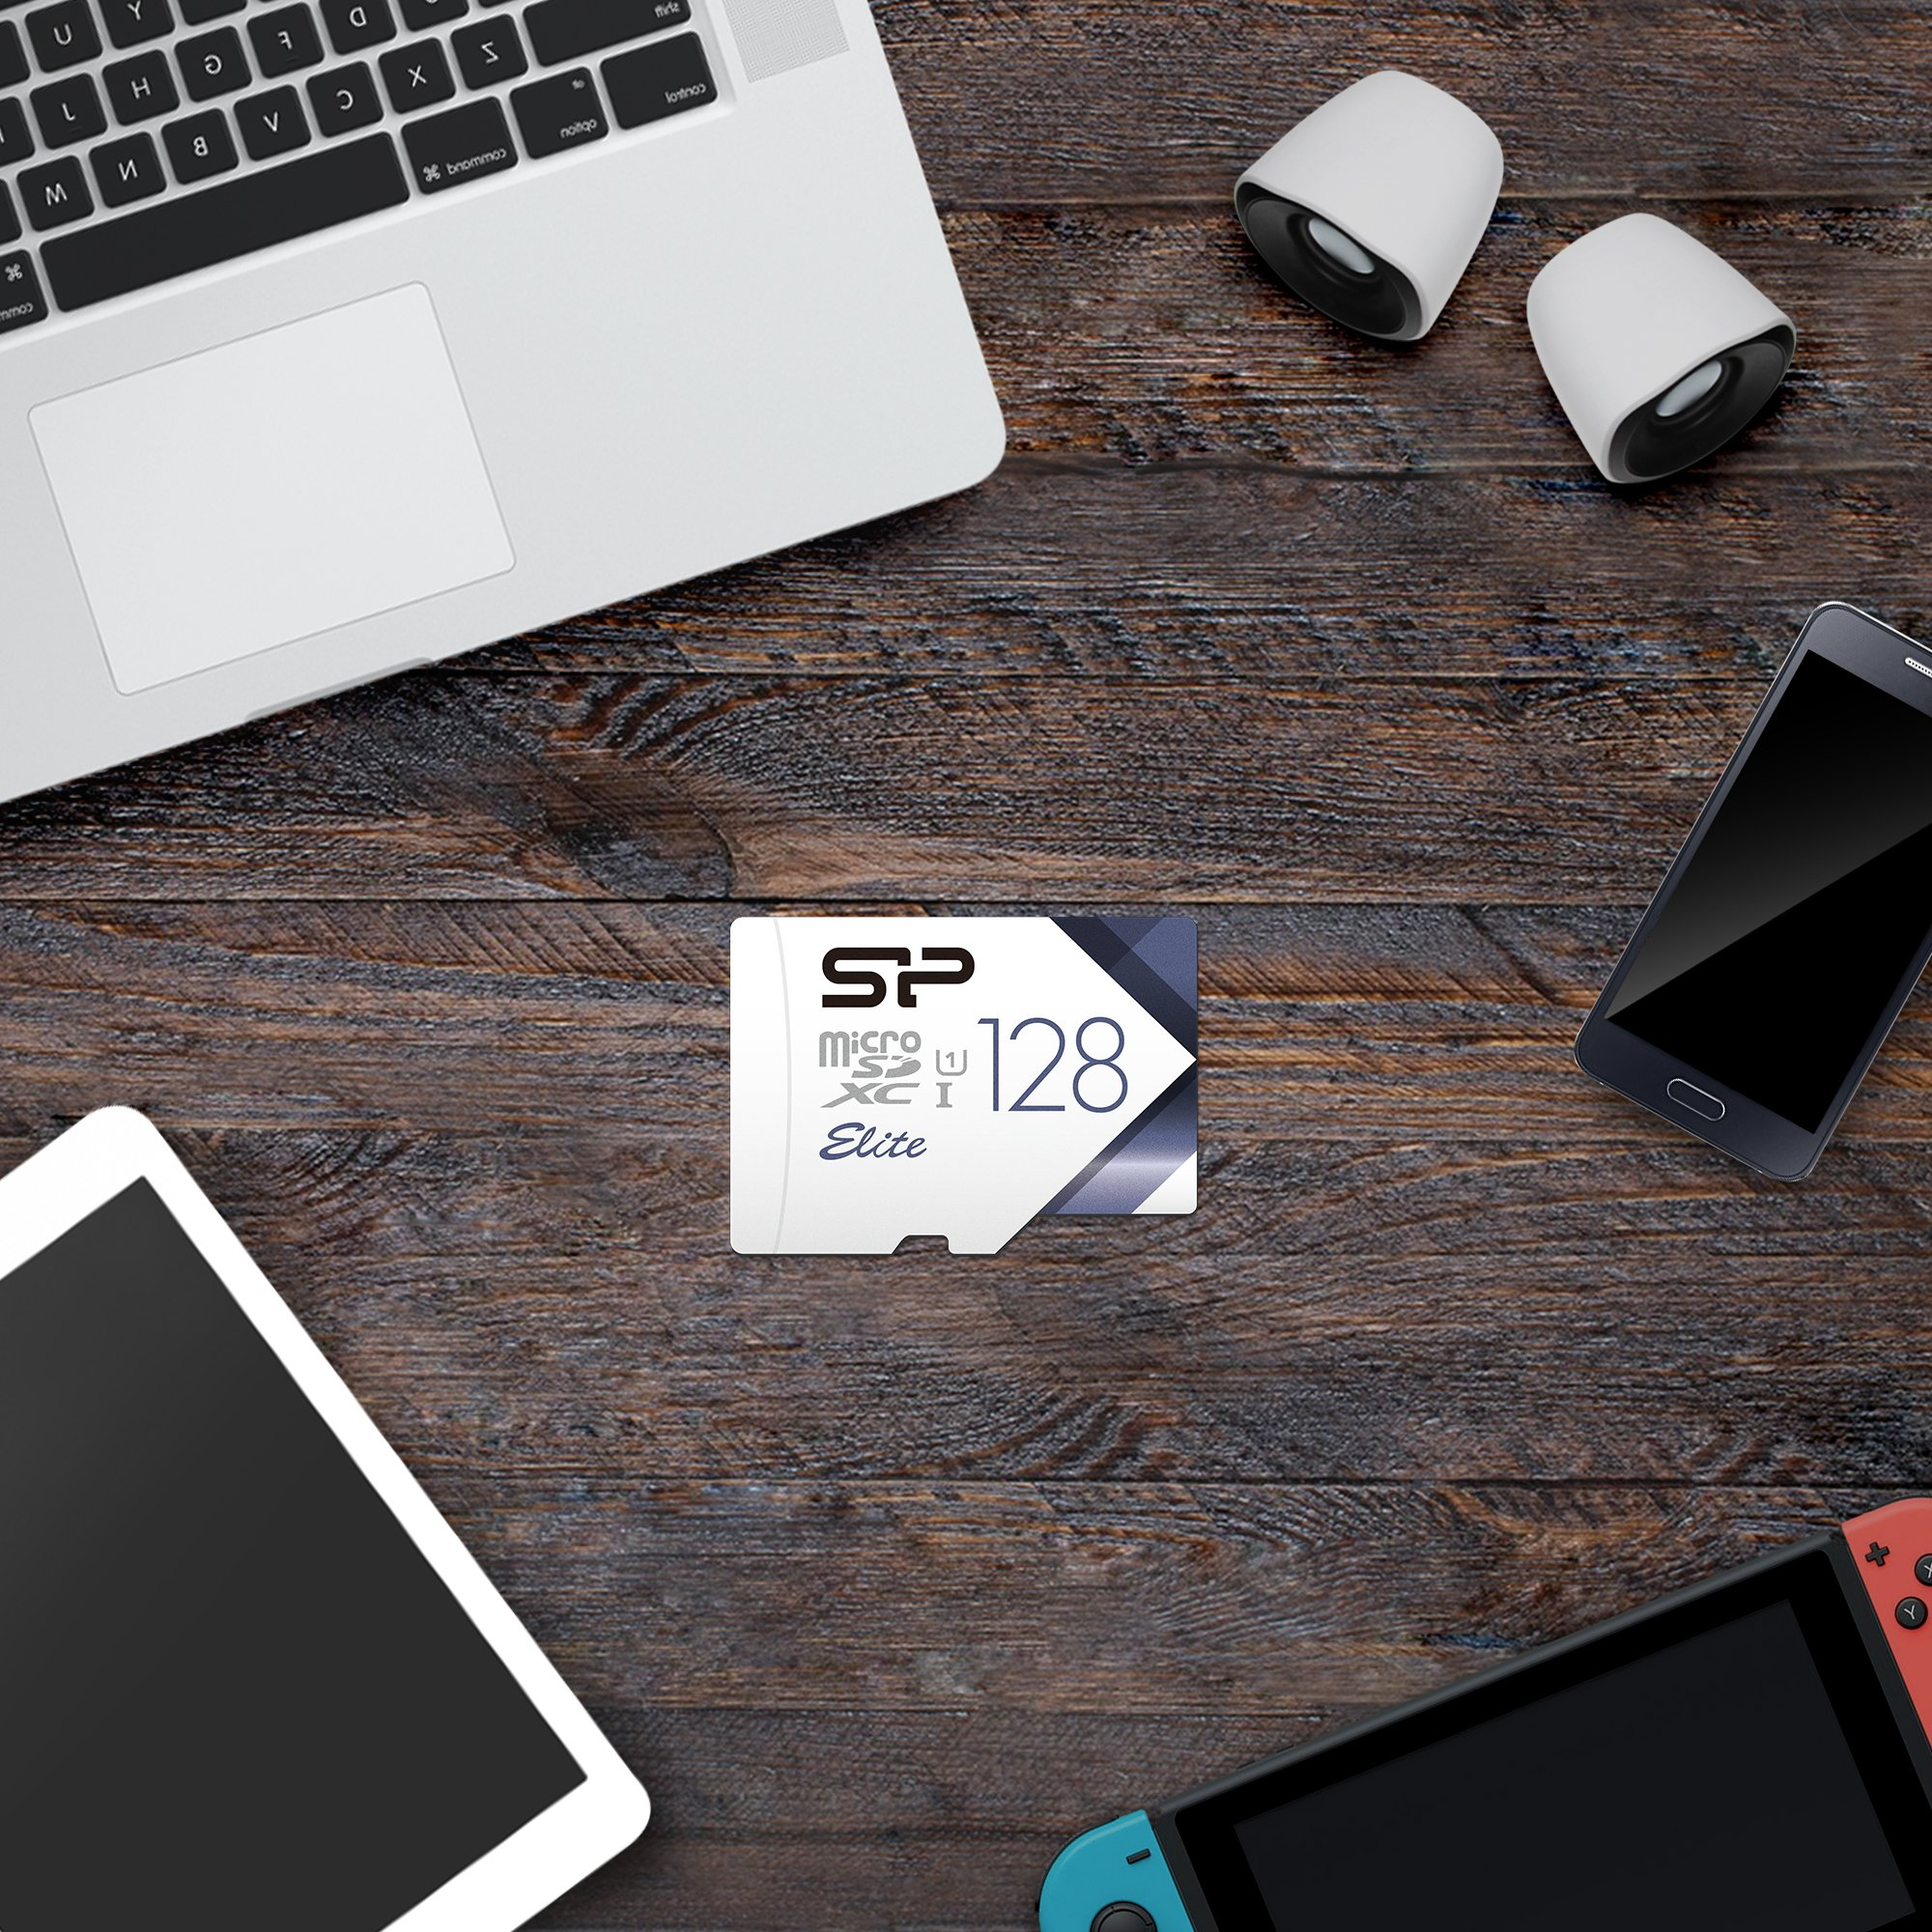 Silicon Power-128GB High Speed MicroSD Card with Adapter by SP Silicon Power (Image #7)